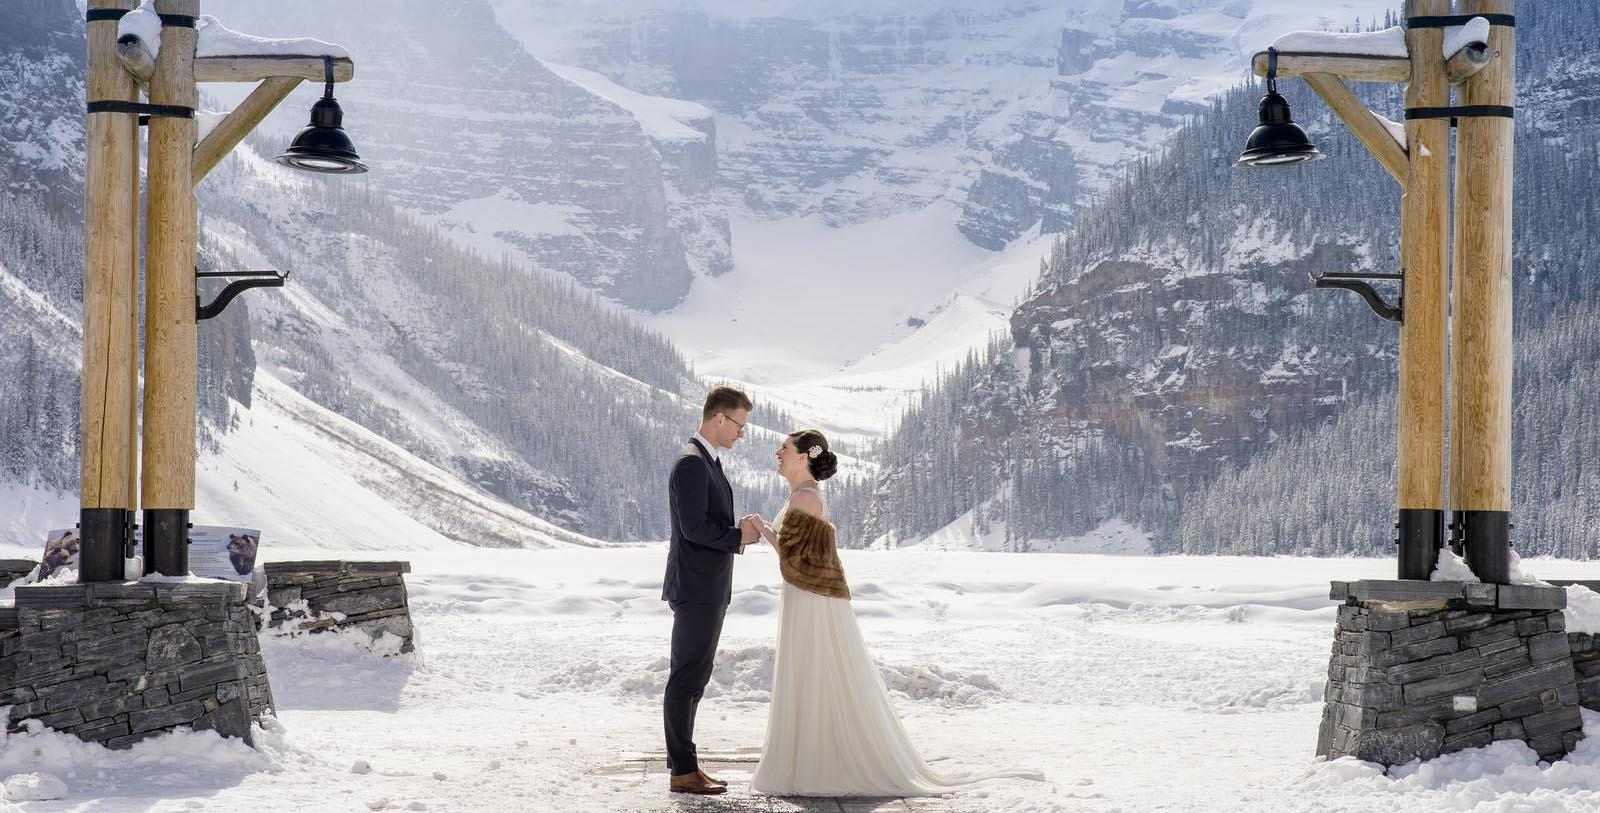 Image of wedding outdoors at Fairmont Chateau Lake Louise, 1911, Member of Historic Hotels Worldwide, in Lake Louise, Alberta, Canada, Experience